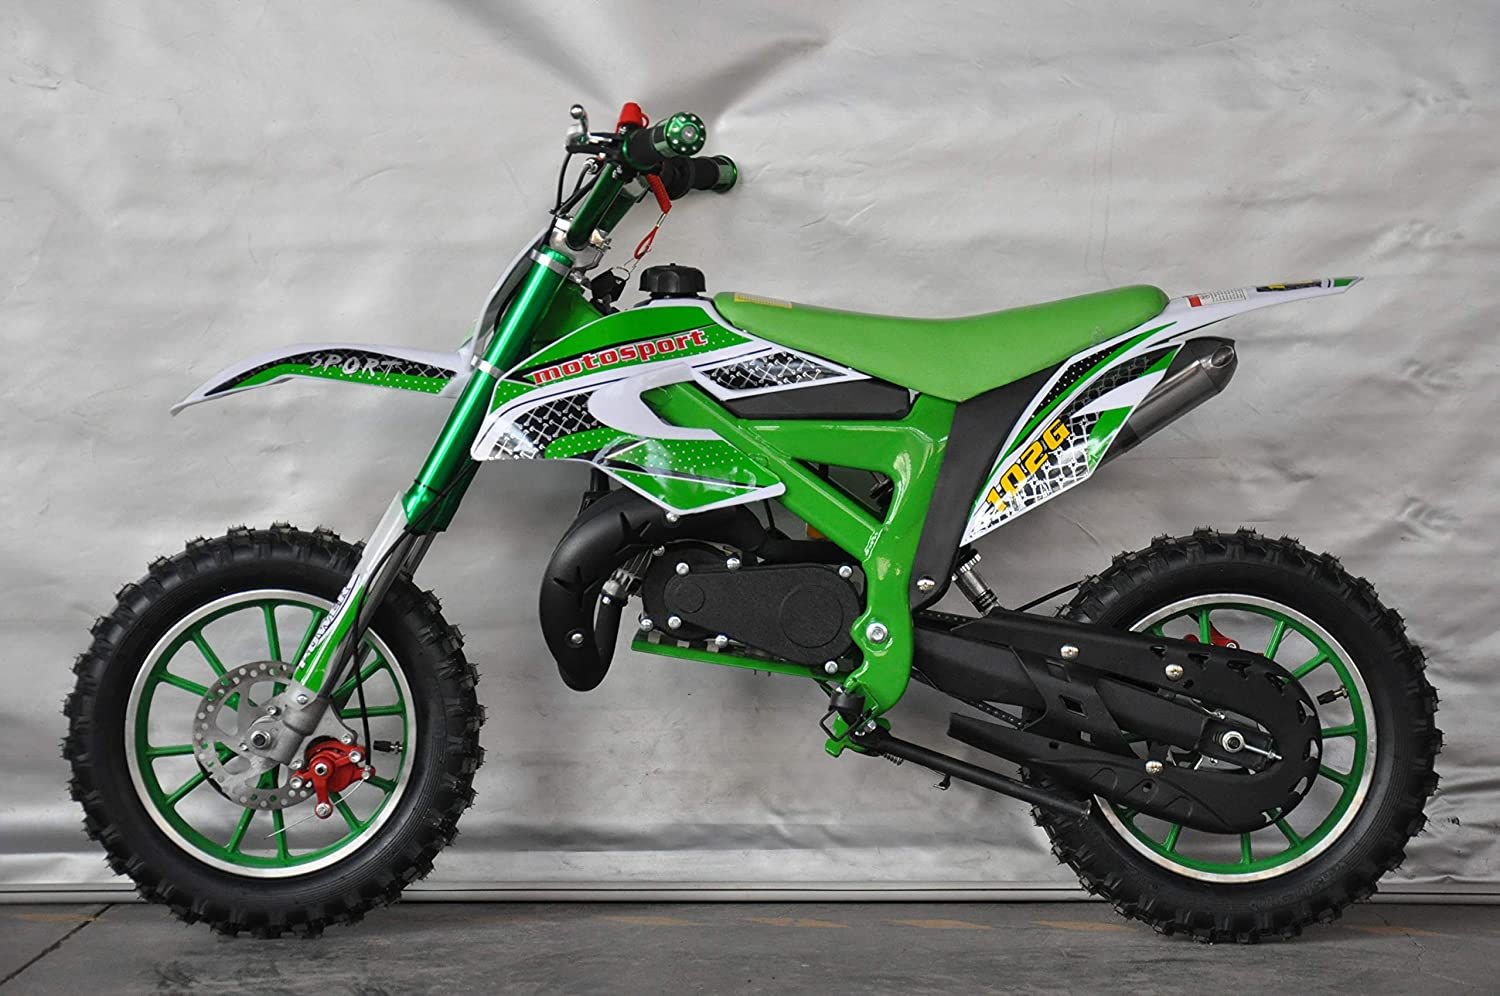 Mini PITBIKE con motore da 49/ cc a 2/ tempi XTM Team Cross Moto di Mini Cross 112x35x58 cm Verde Mini Dirt Bike